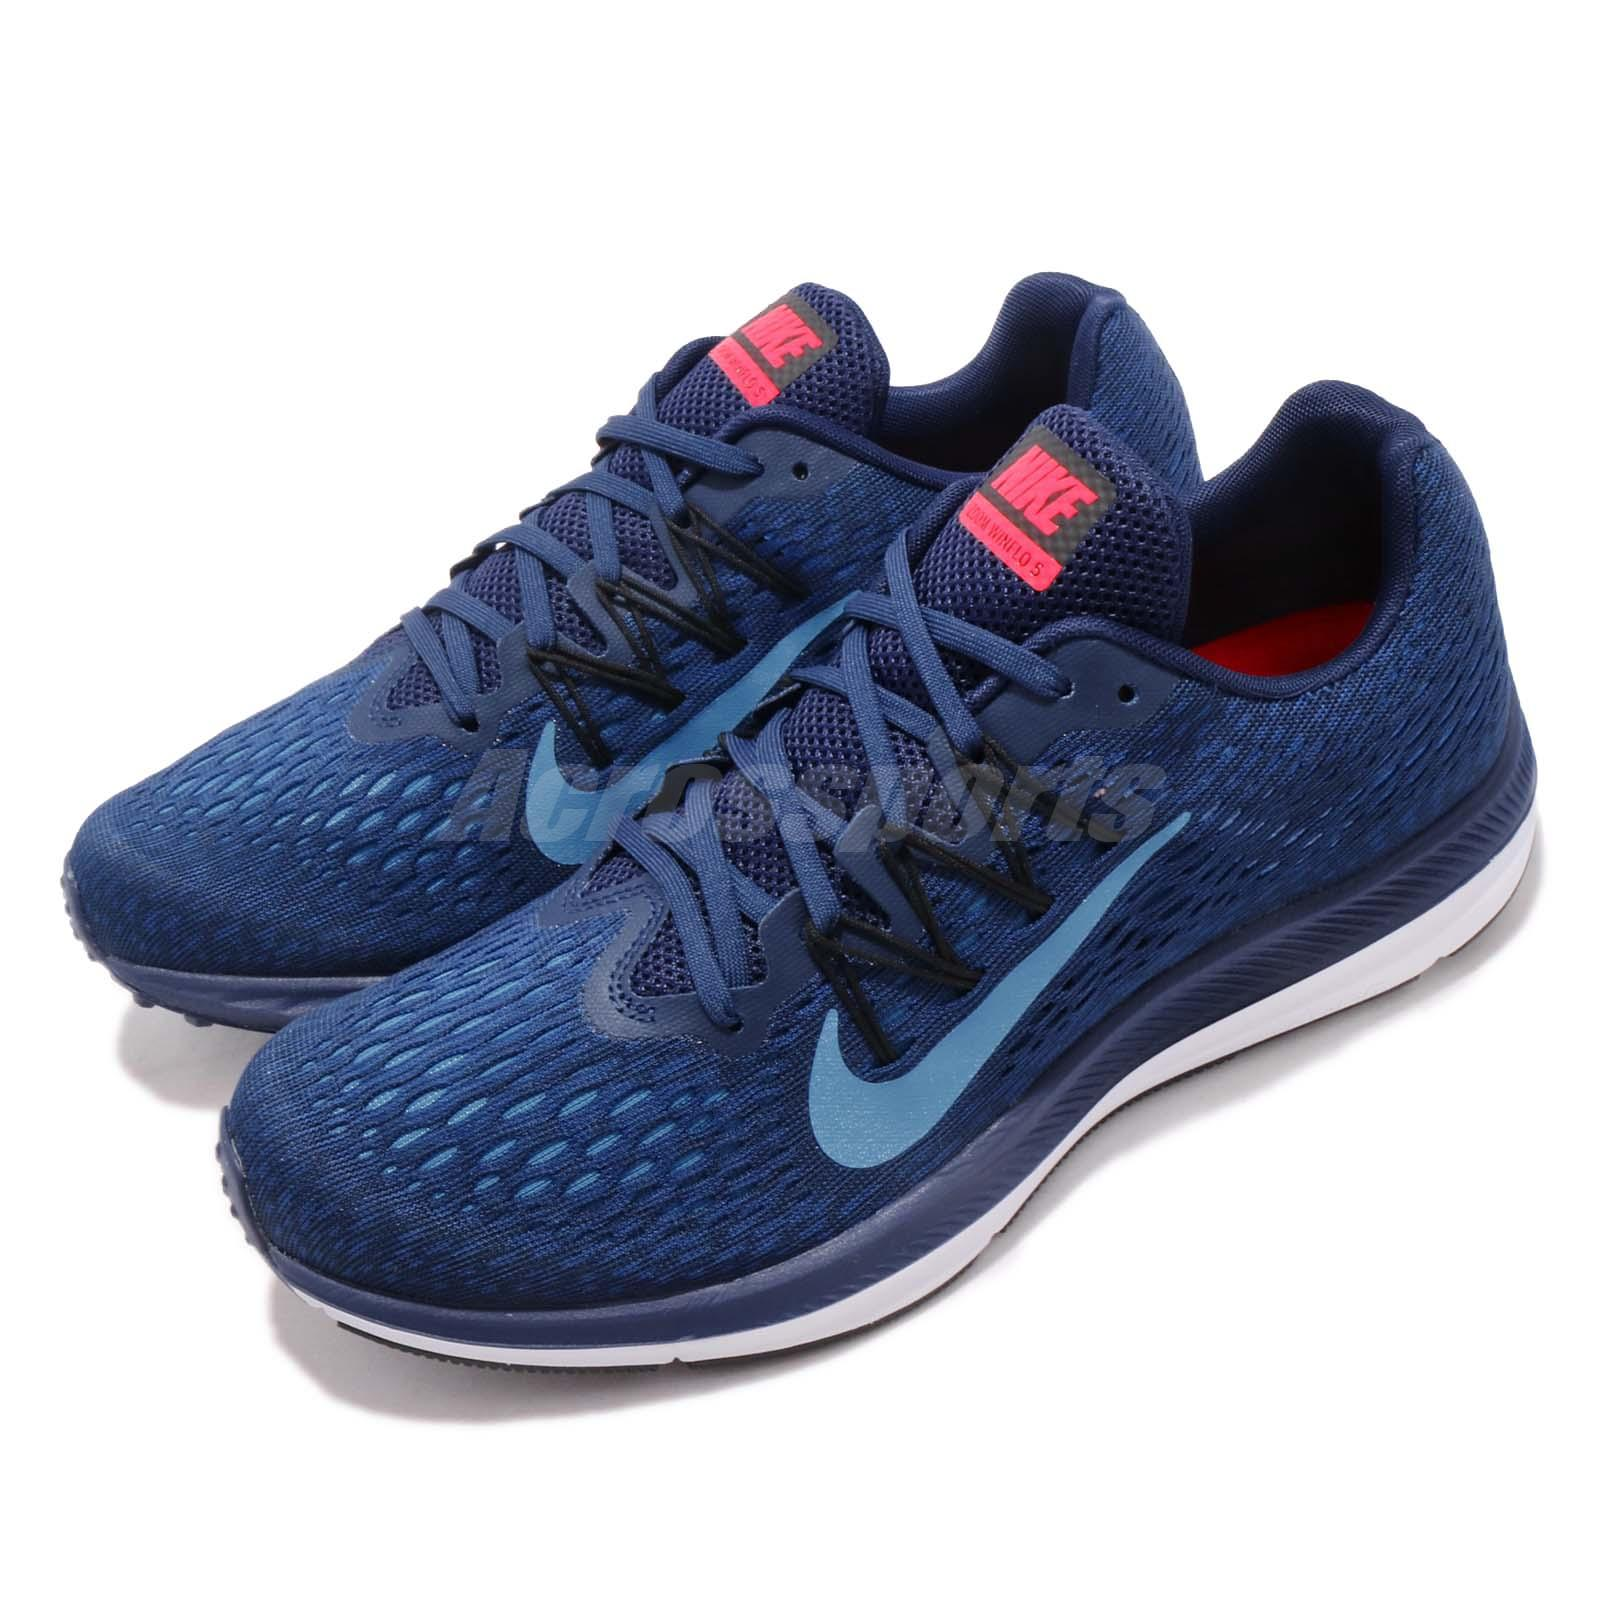 bf016ac0ecbce Details about Nike Zoom Winflo 5 V Photo Blue Void White Men Running Shoes  Sneakers AA7406-405